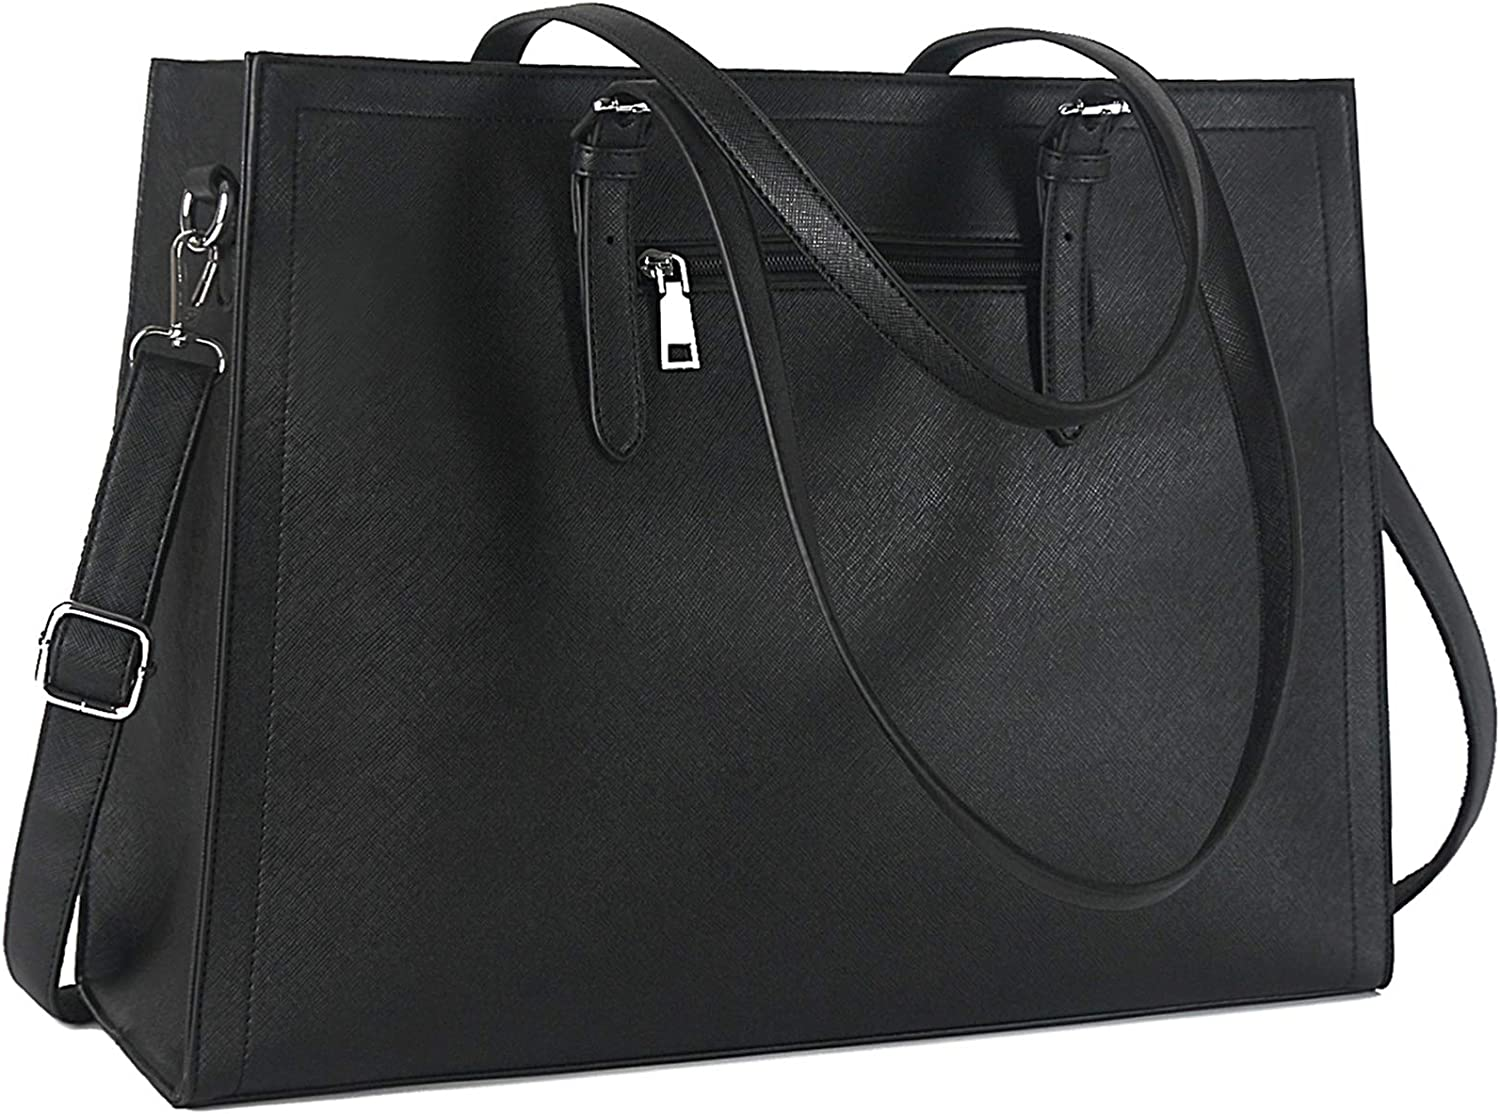 Laptop Bag for Women Complete Free Shipping Cheap mail order sales 15.6 Leather Offic Computer Inch Classy